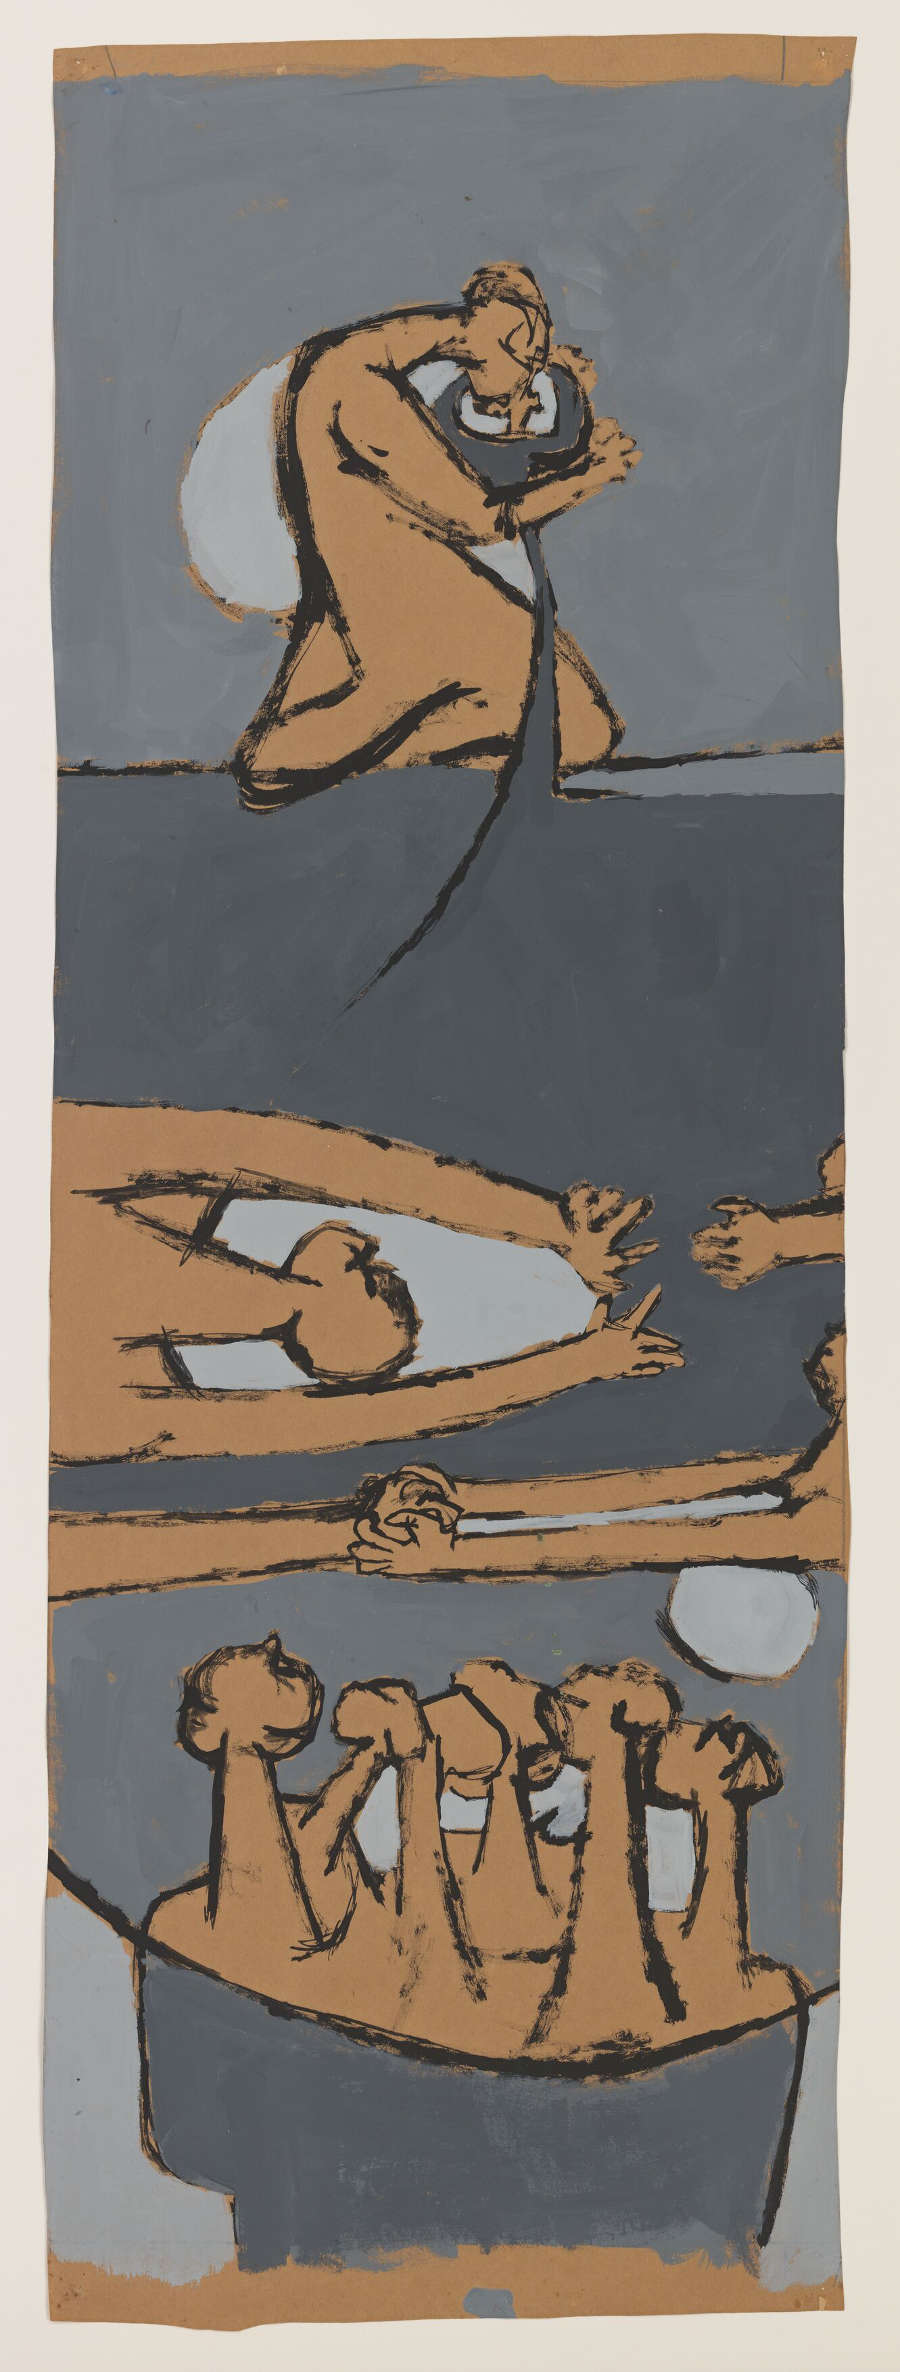 Luchita Hurtado, Untitled, c. 1954. Oil on paper Unique 106 x 37.8 cm / 41 3/4 x 14 7/8 inches © Luchita Hurtado. Courtesy the artist and Hauser & Wirth. Photo: Jeff McLane